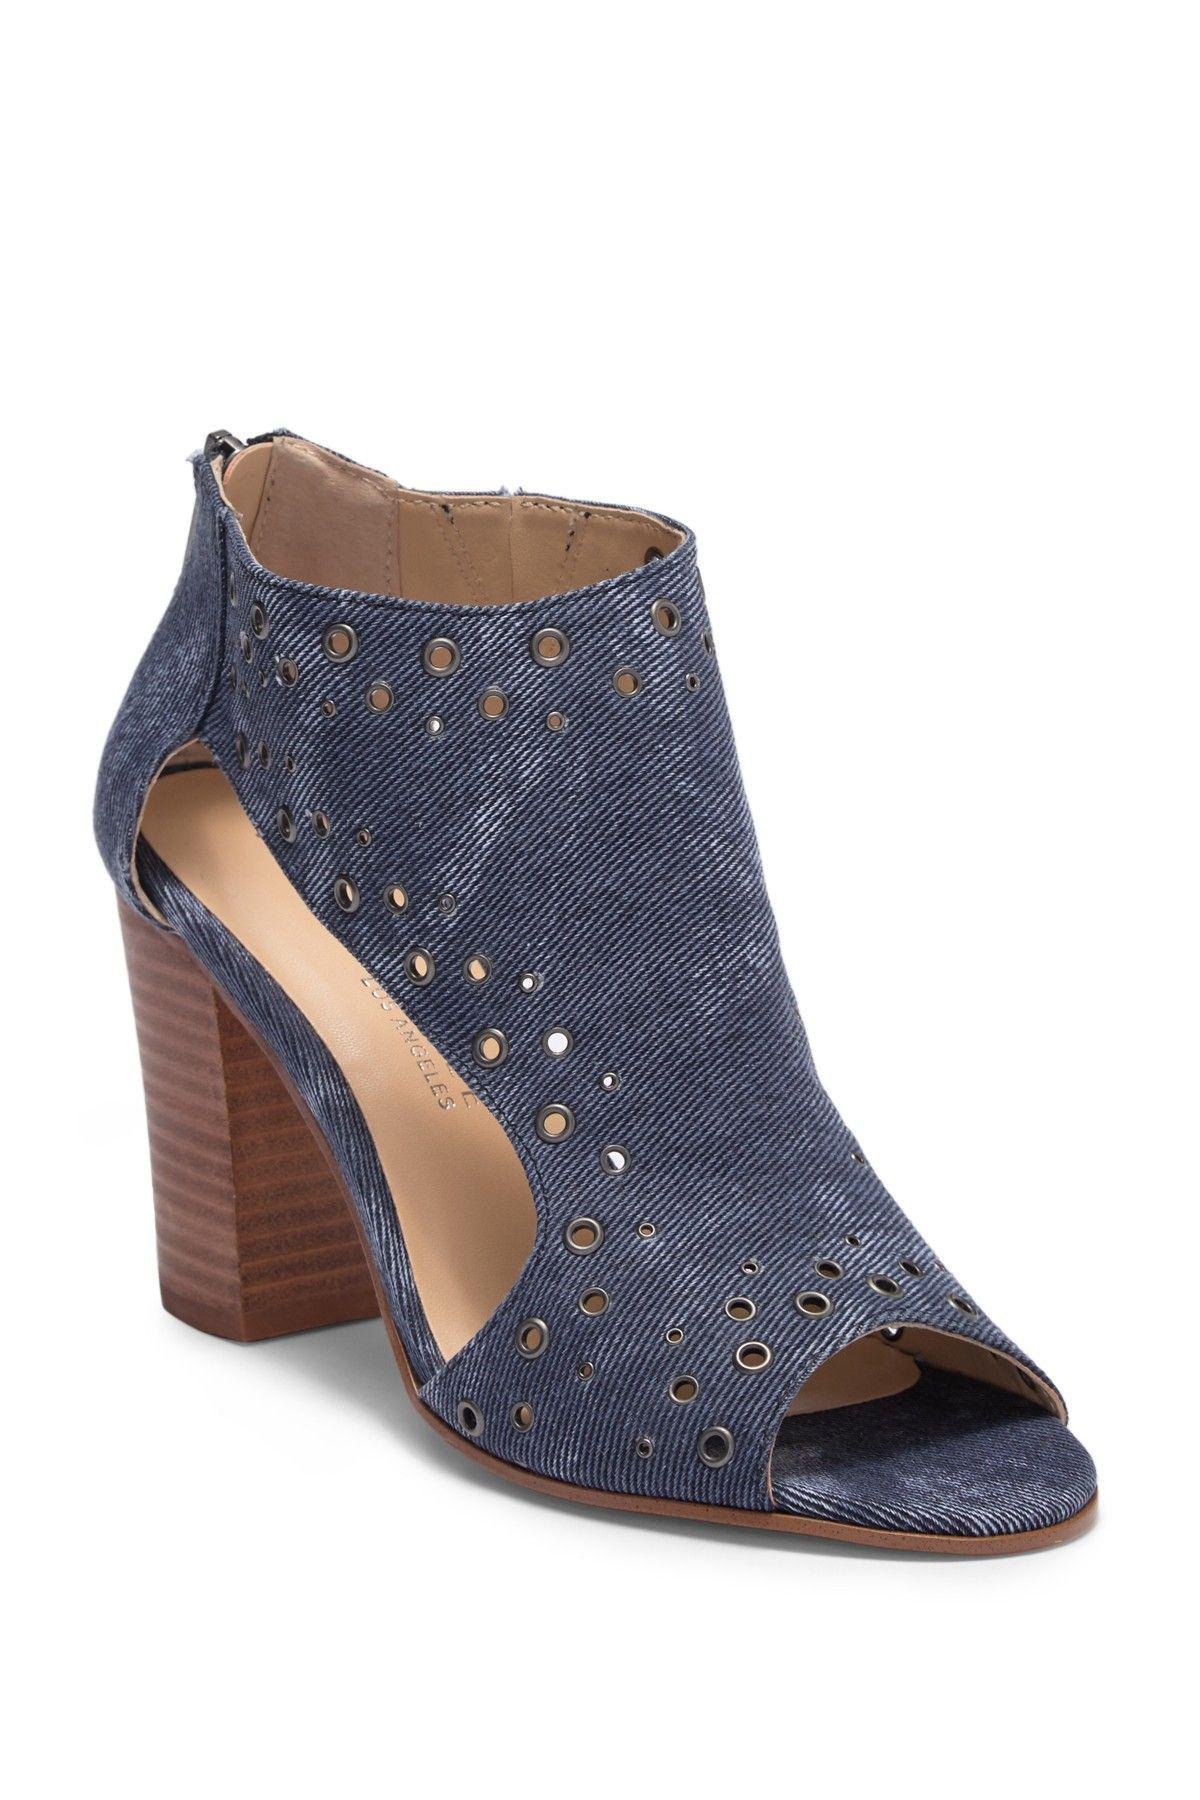 5950bc6498b Lyst - Very Volatile Womens Tevy Open Toe Ankle Fashion Boots in Blue